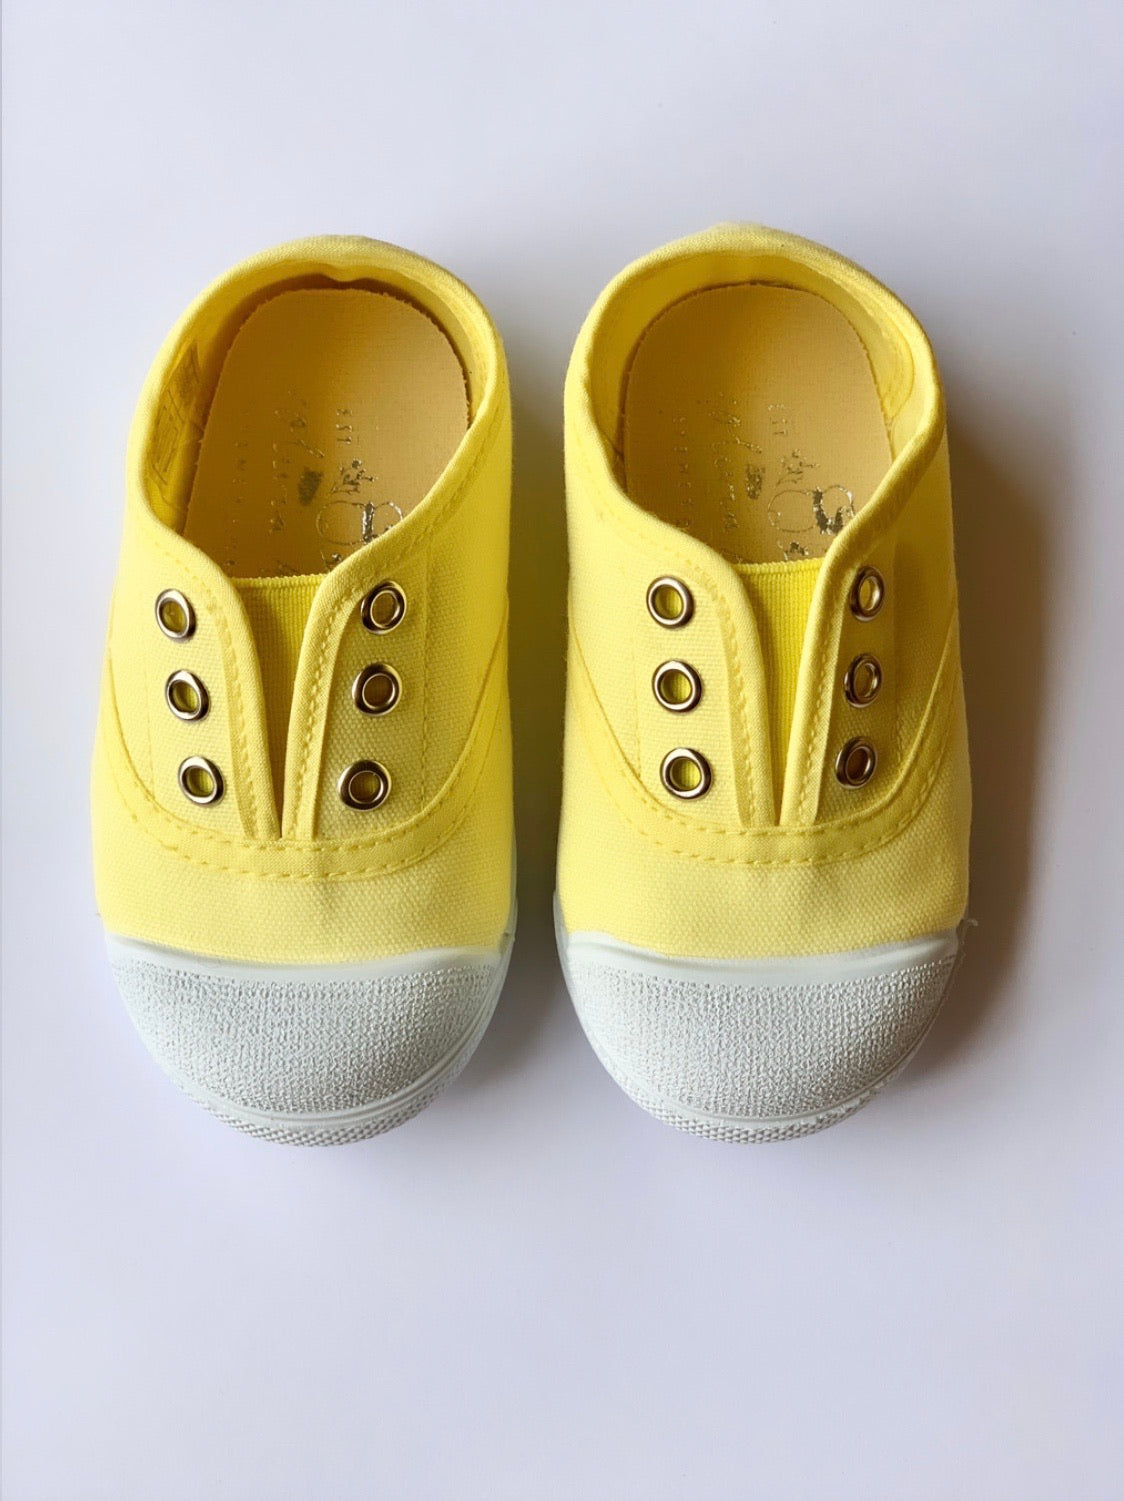 Our OLIVIA ANN soft canvas shoes have a new and improved material that is supersoft and comfortable, and perfect for speedy slip-ons when there's a game in the garden. Plimsoles, sneakers. Kids shoes. Lemon.